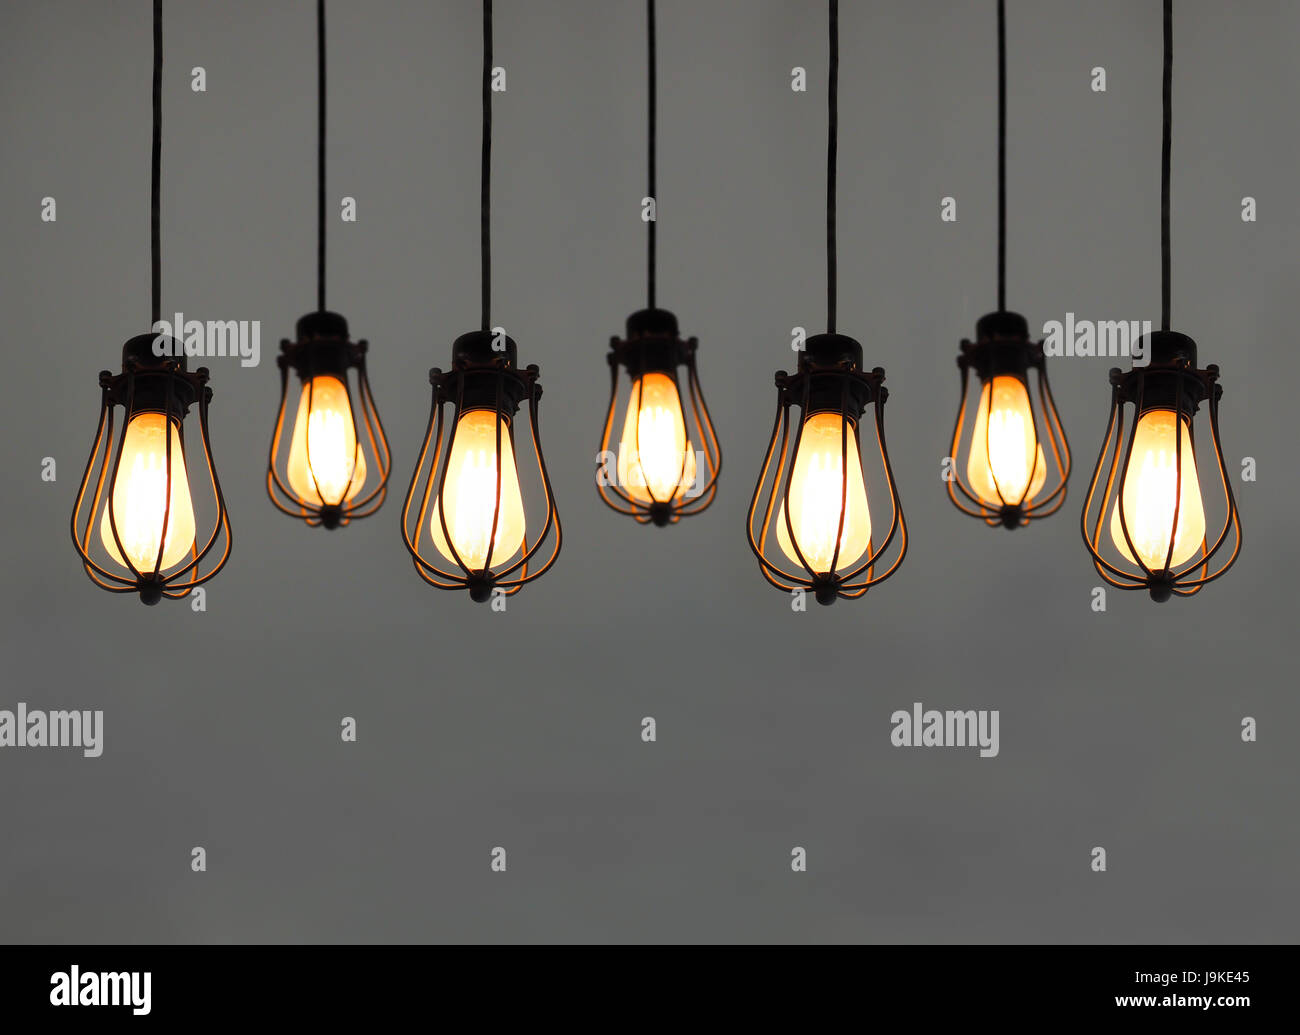 beautiful hanging light bulbs on plain background for card banner wallpaper